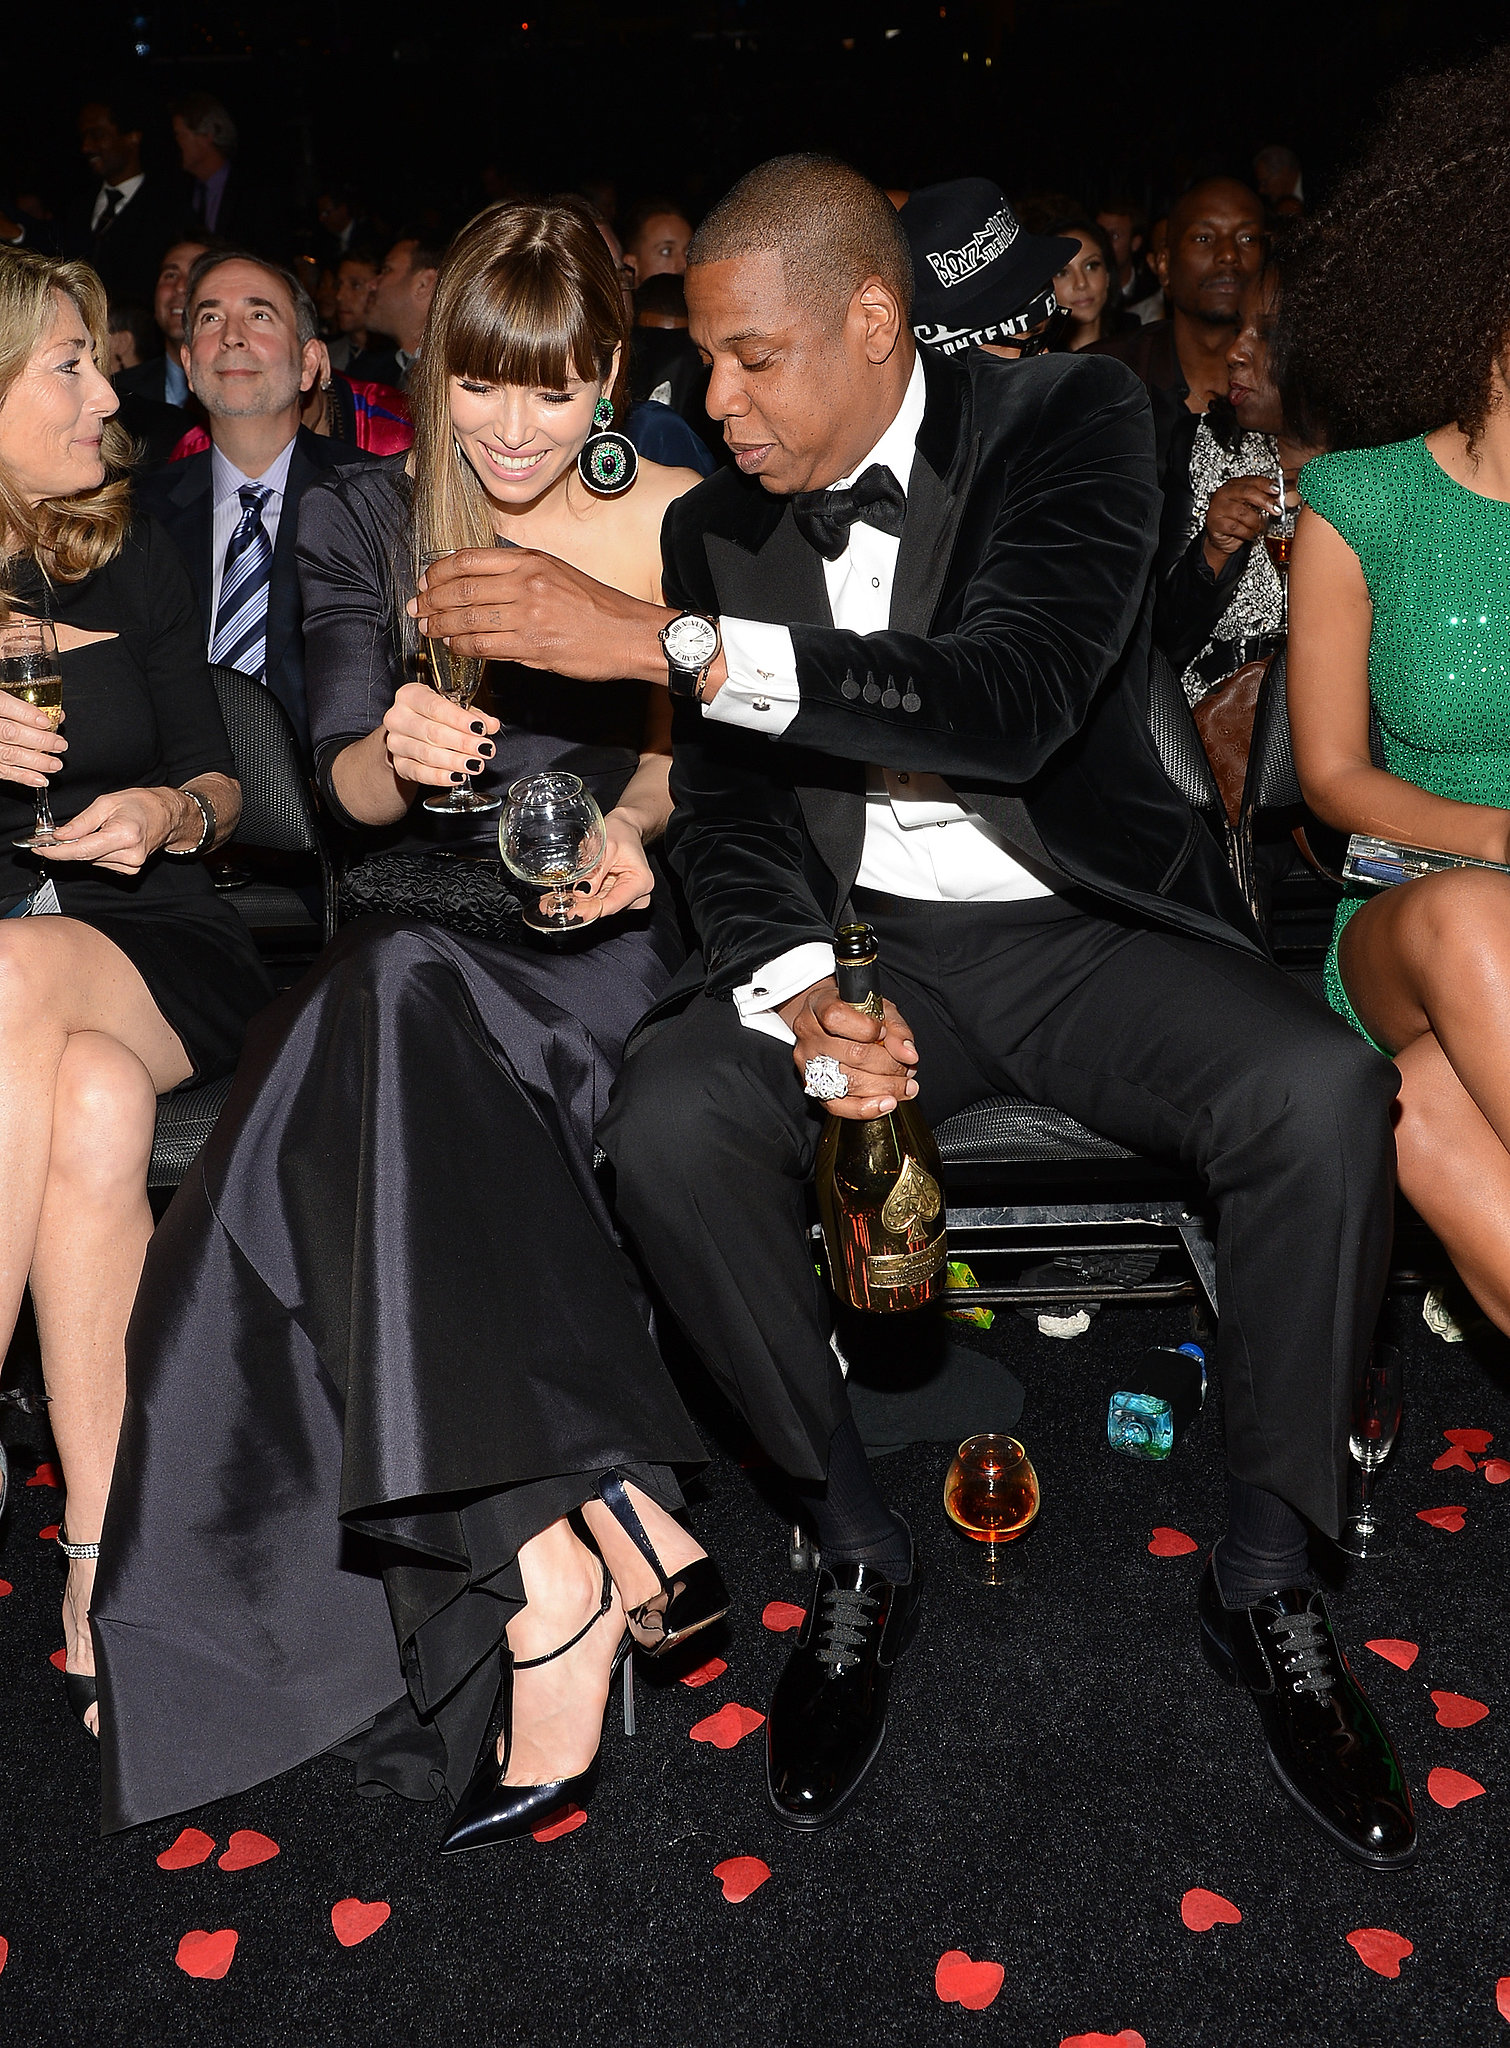 Jessica Biel shared drinks with Jay-Z at the Grammys.